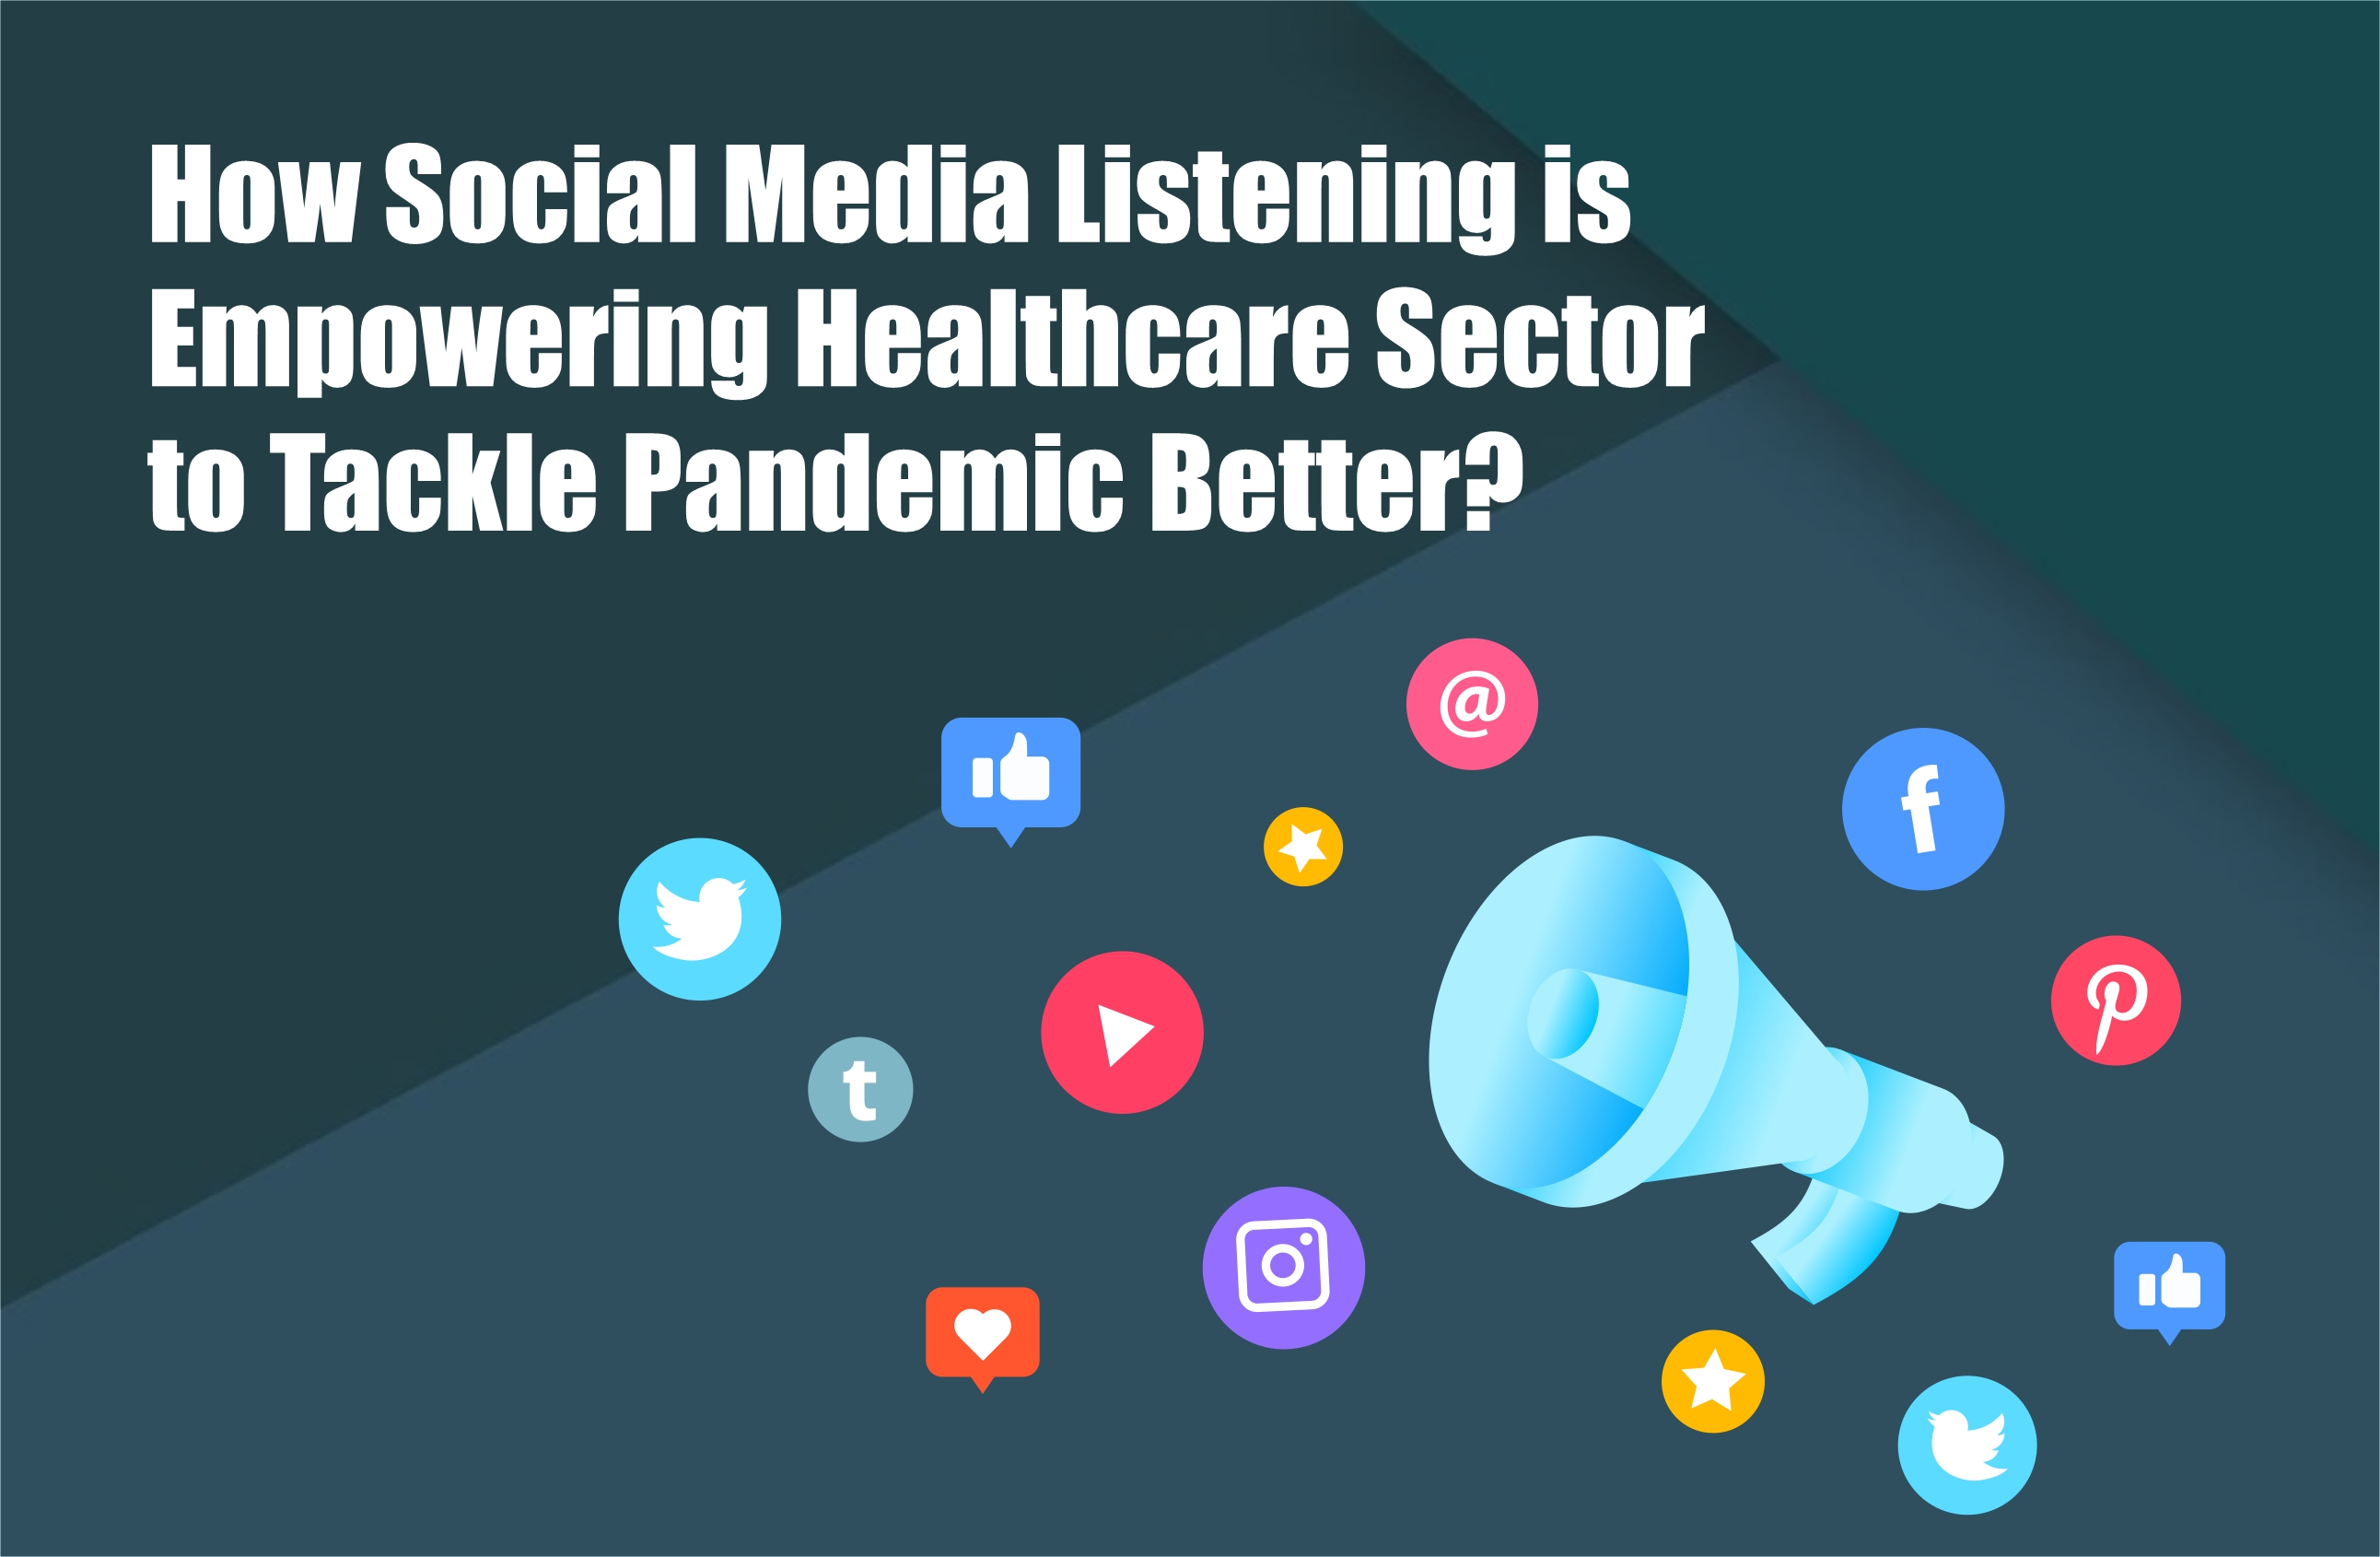 how-social-media-listening-is-empowering-healthcare-sector-to-tackle-pandemic-better